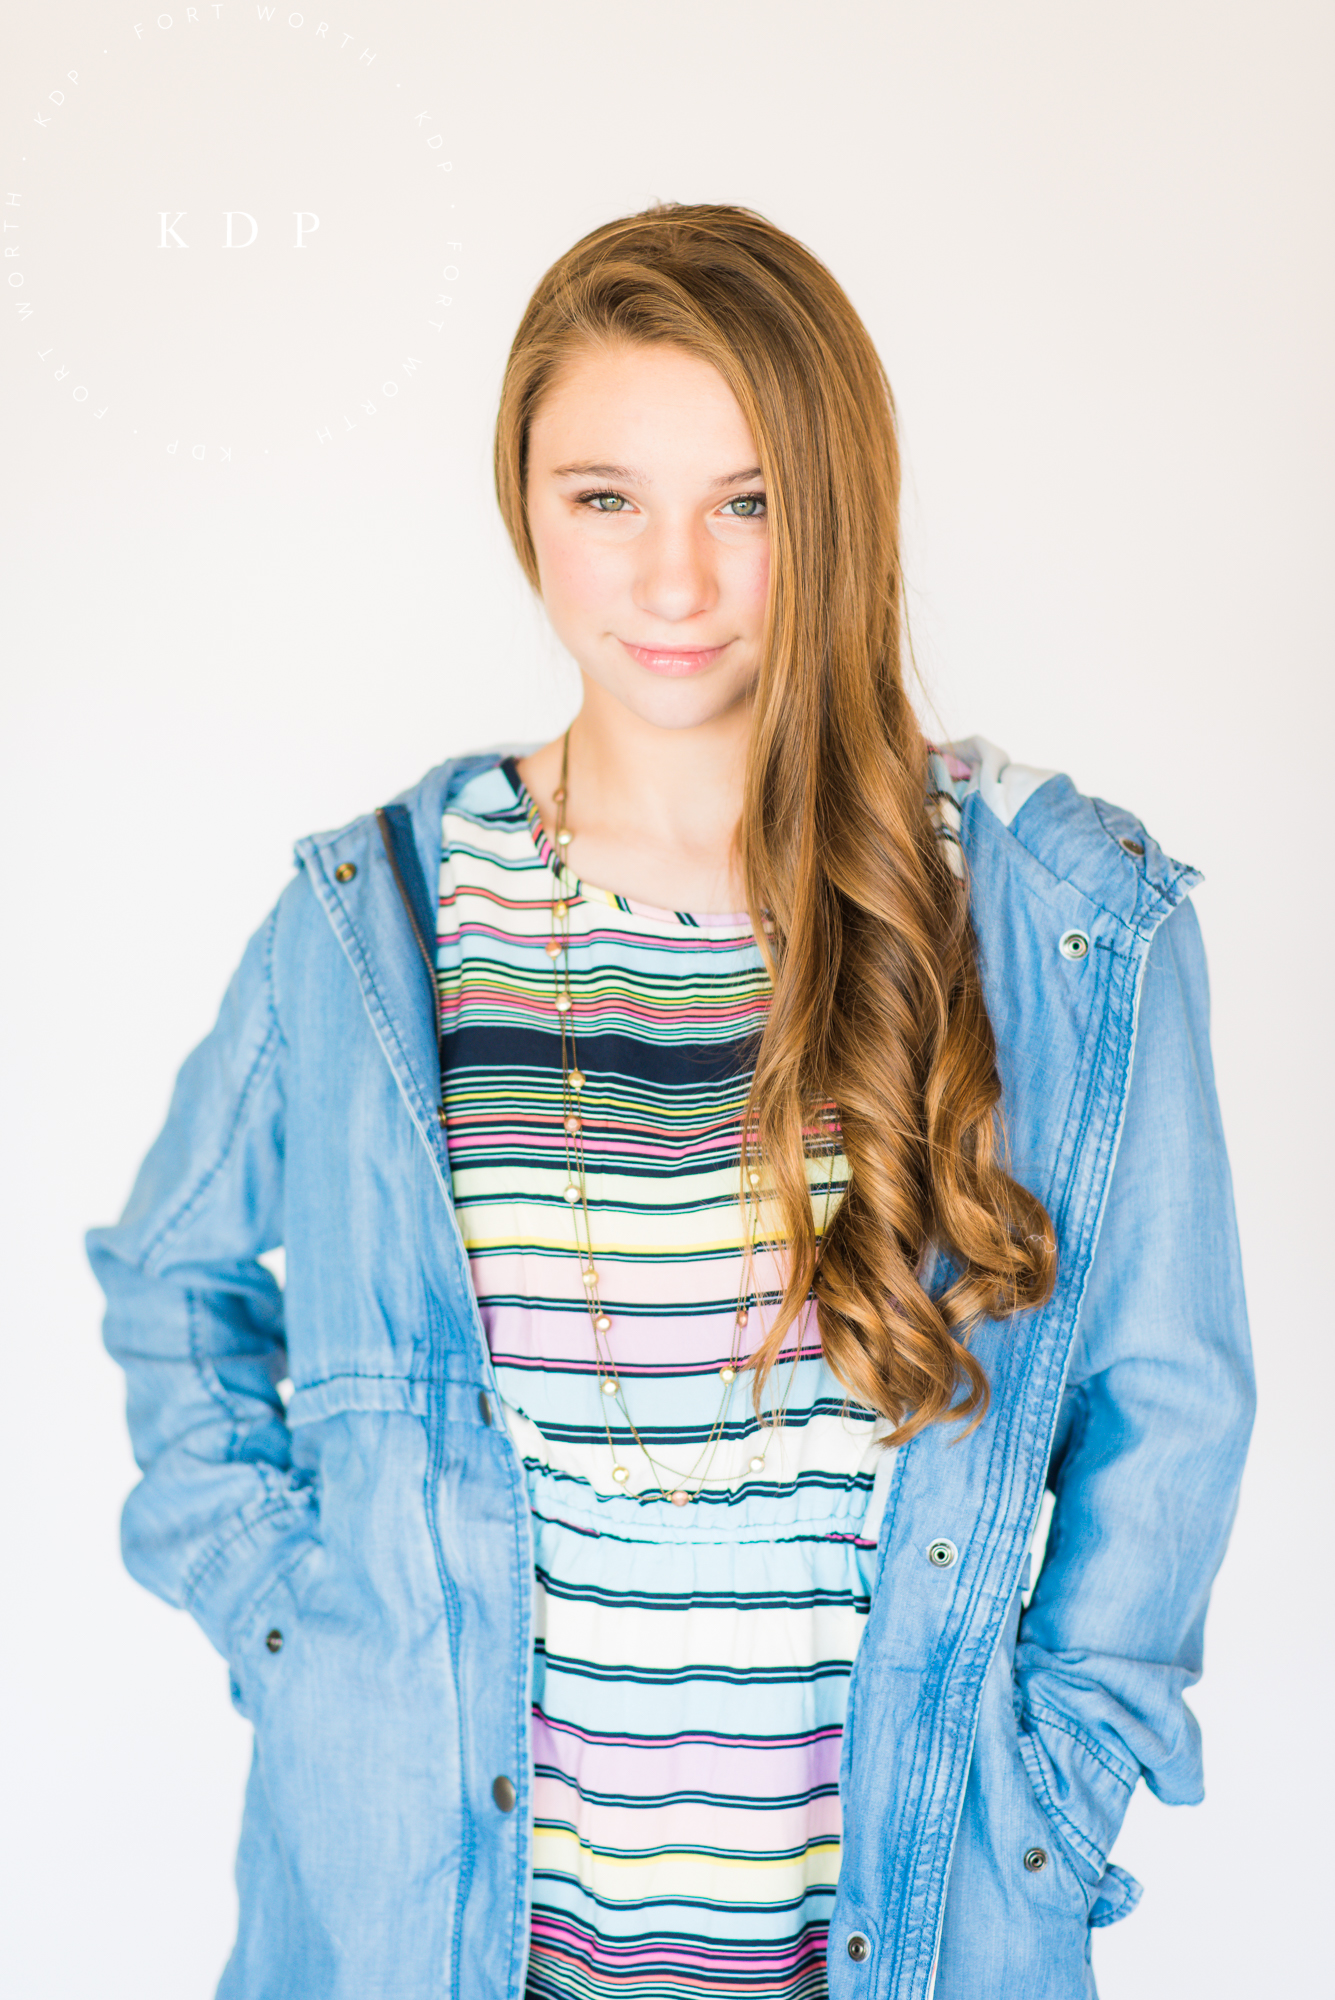 Find this dress and jacket at Gap Kids in Southlake.